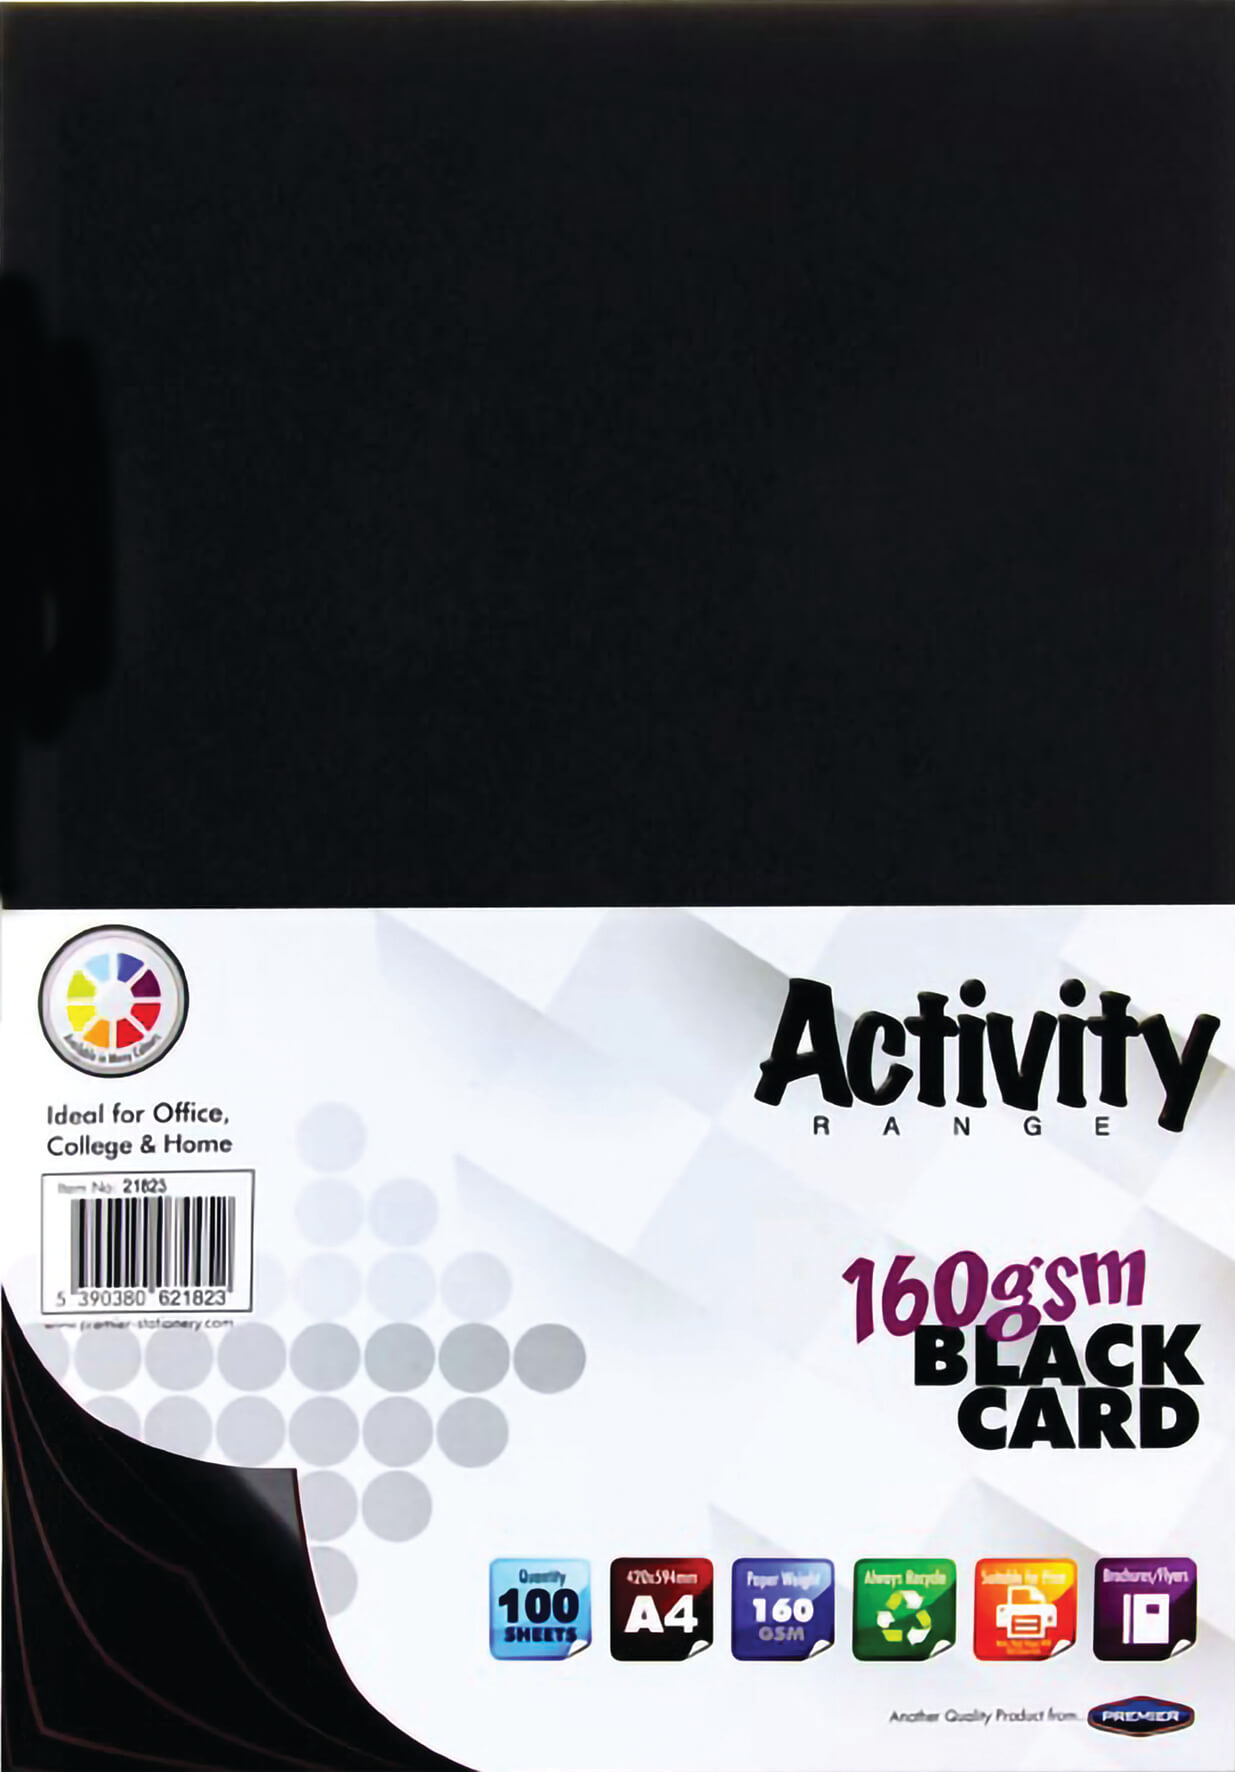 Card Black A4 160gsm - 100 Sheets